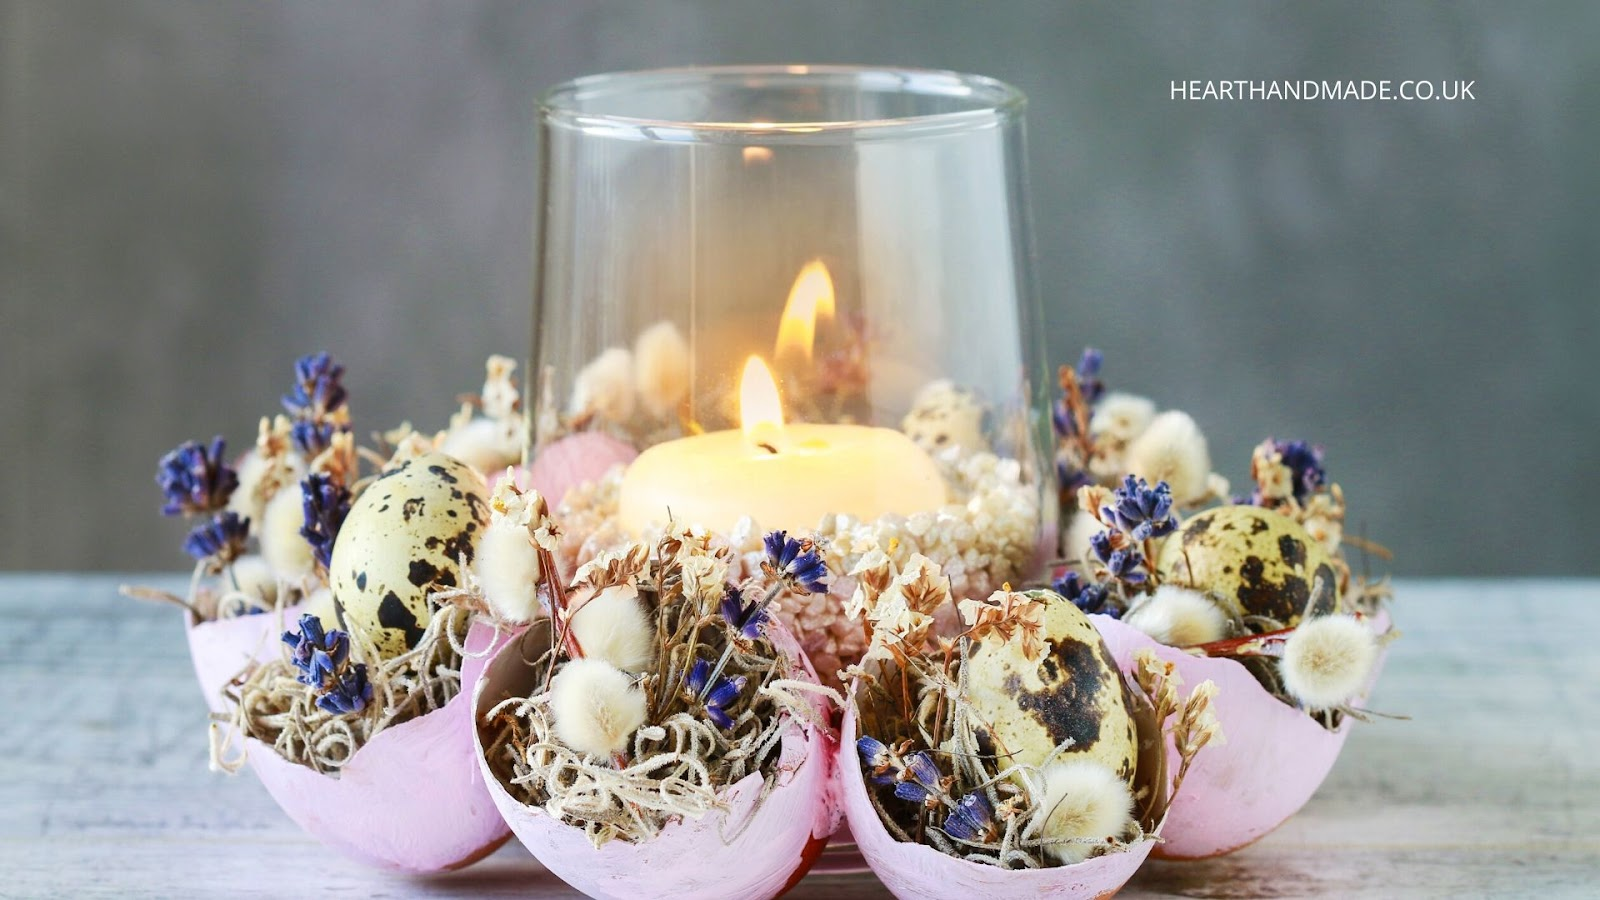 How to make an eggshell table centrepiece